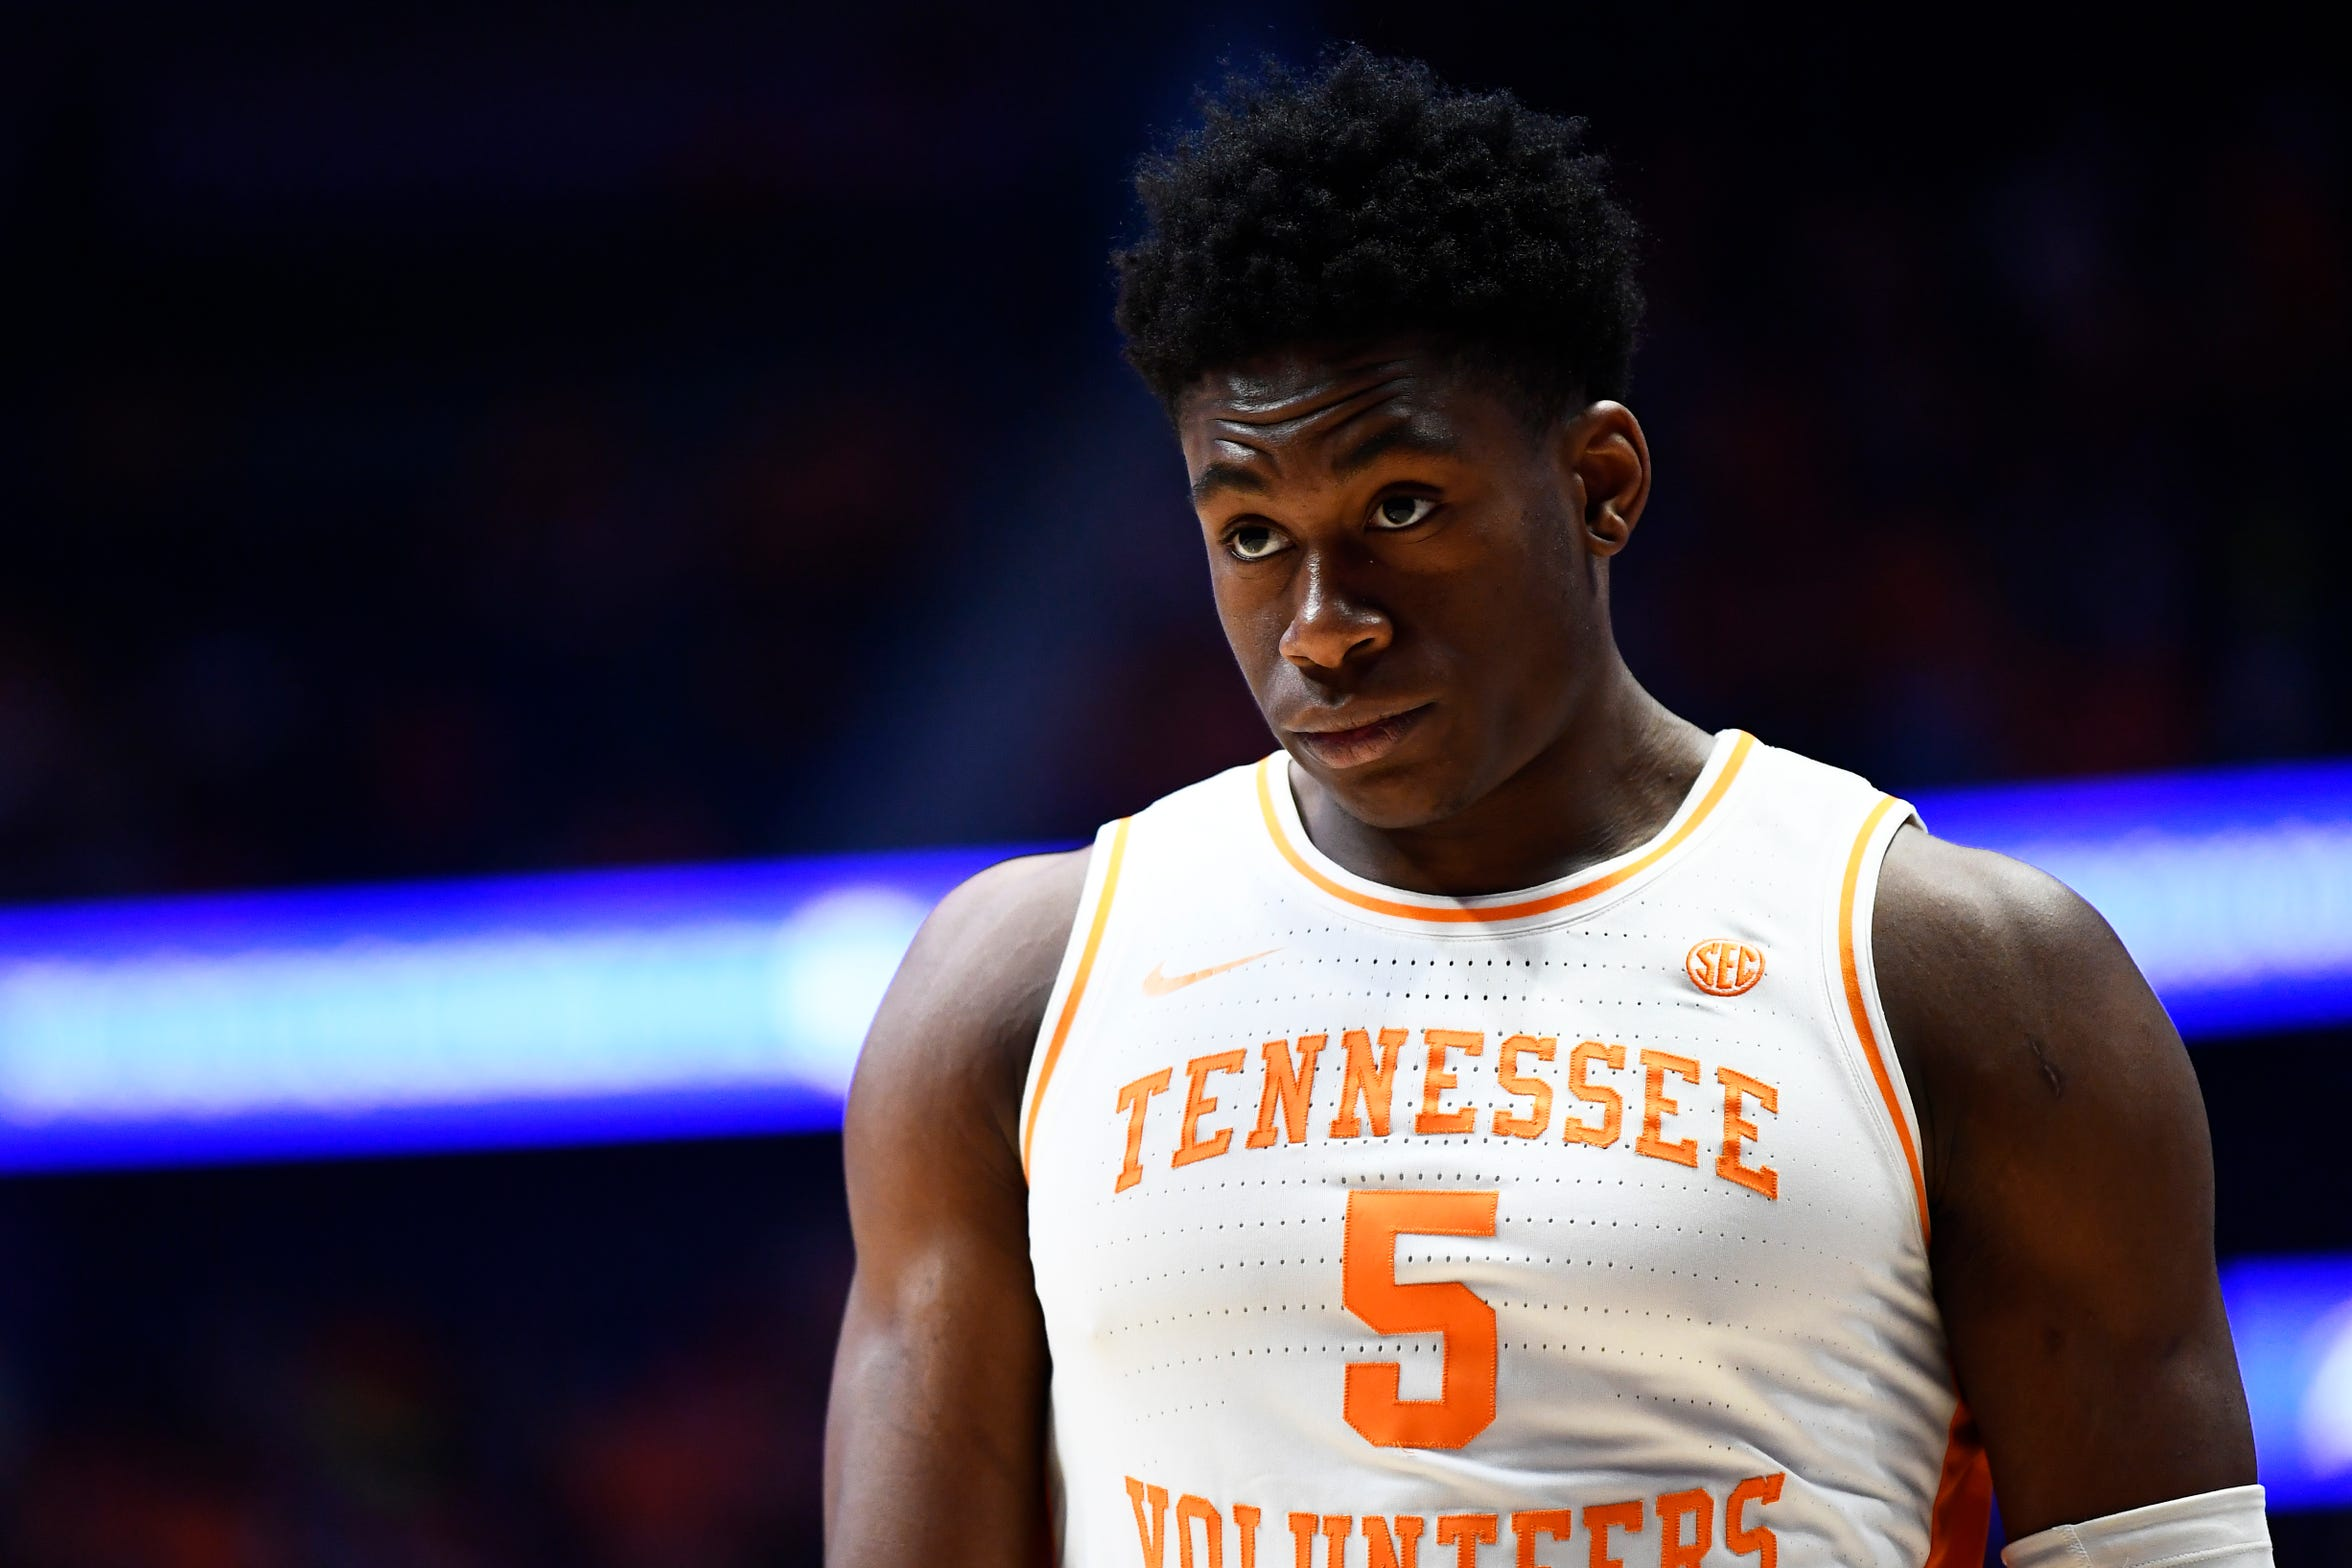 Tennessee guard Admiral Schofield (5) looks towards the basket during the second half of the SEC Men's Basketball Tournament championship game at Bridgestone Arena in Nashville, Tenn., Sunday, March 17, 2019.